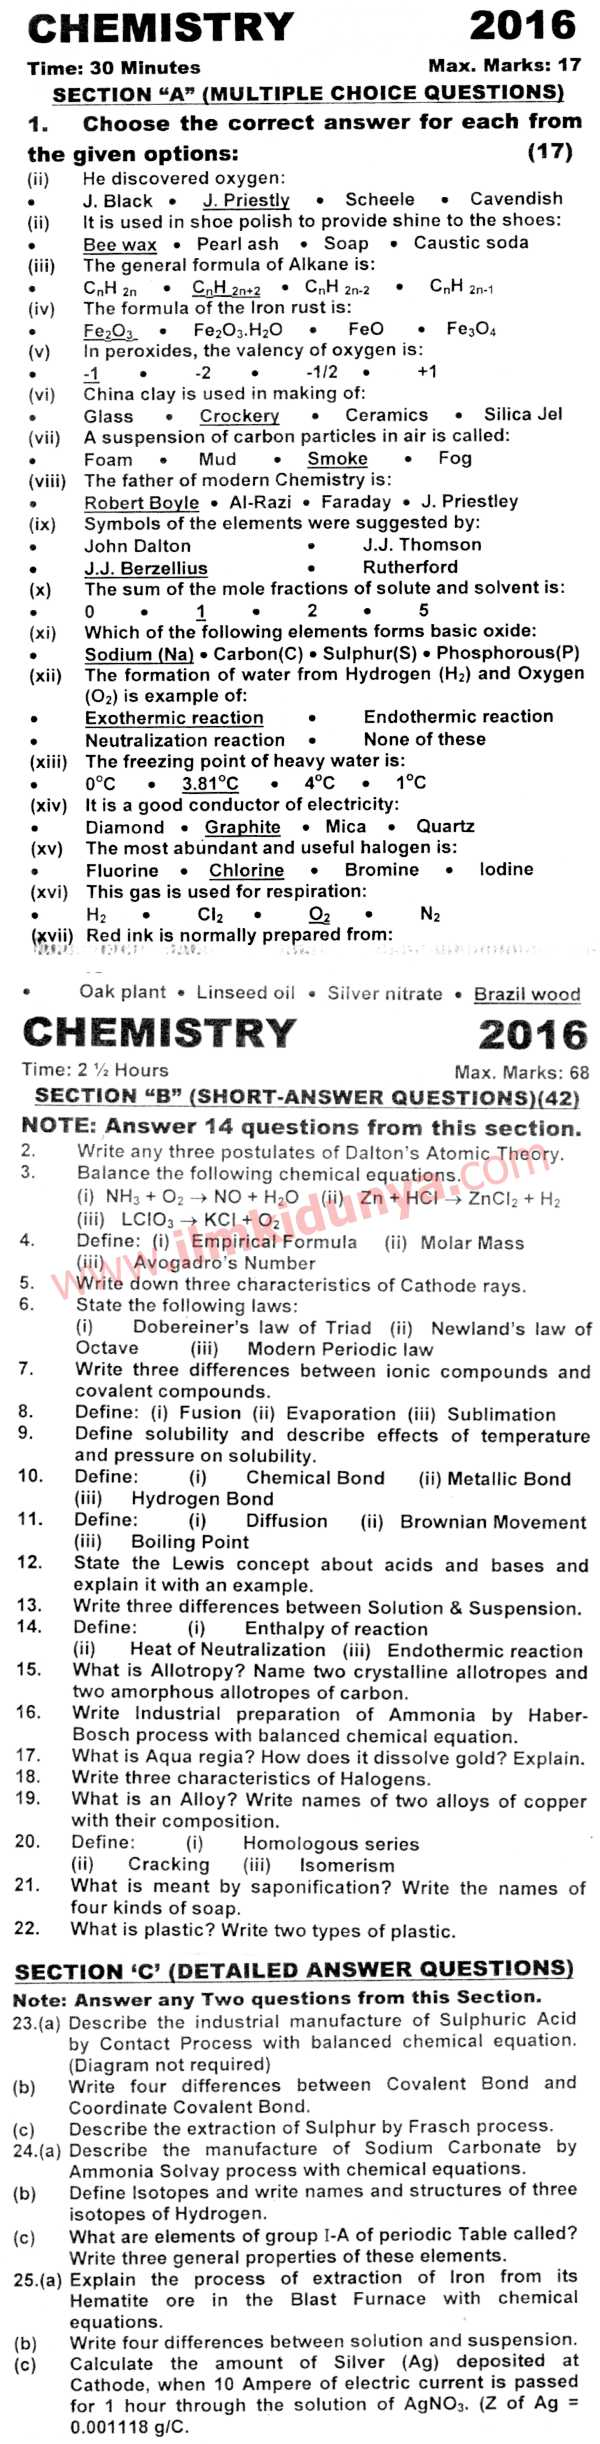 Past Papers 2016 Karachi Board 9th Class Chemistry English